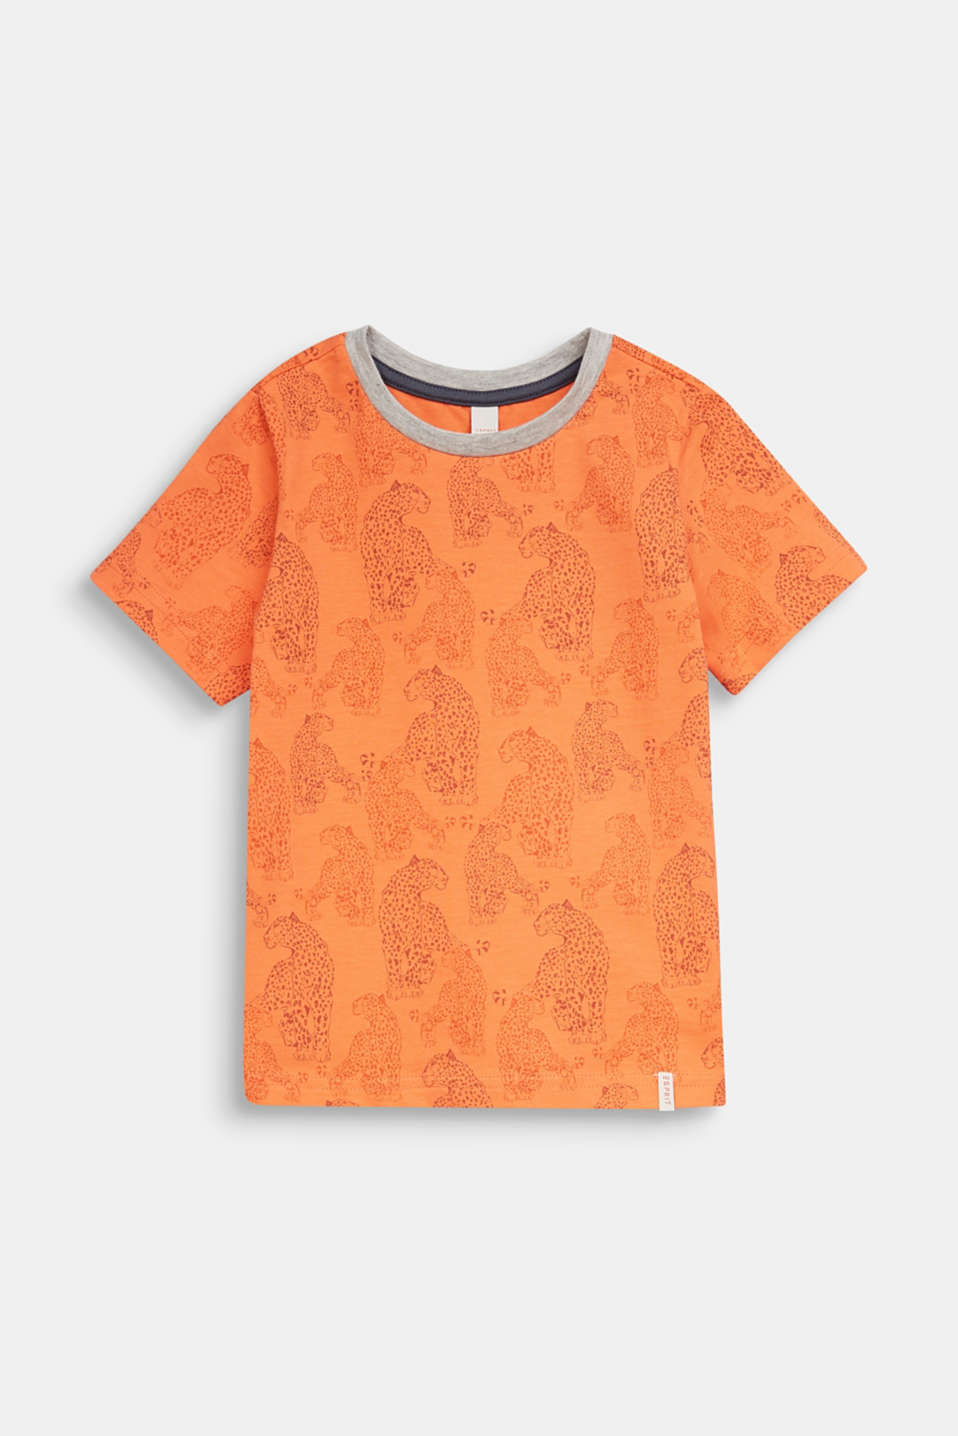 T-shirt with a leopard skin print, SUNNY ORANGE, detail image number 0